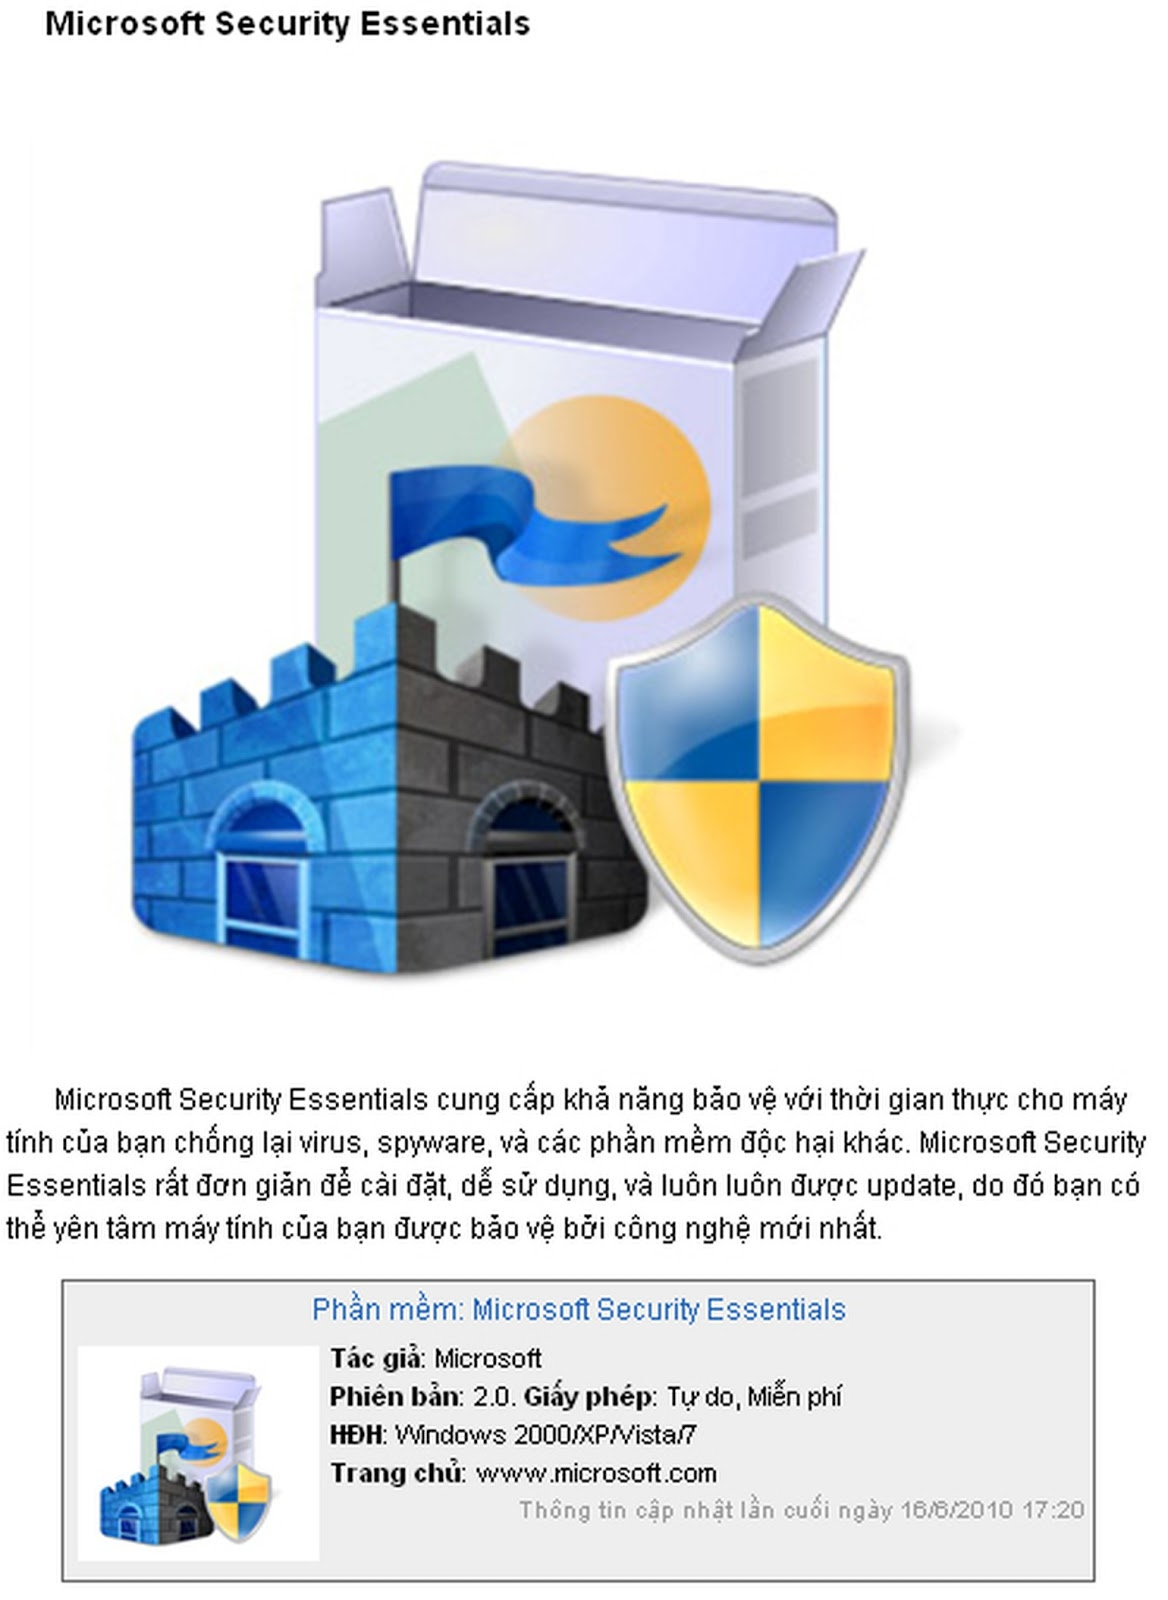 Microsoft Security Essentials free Download for Windows PC